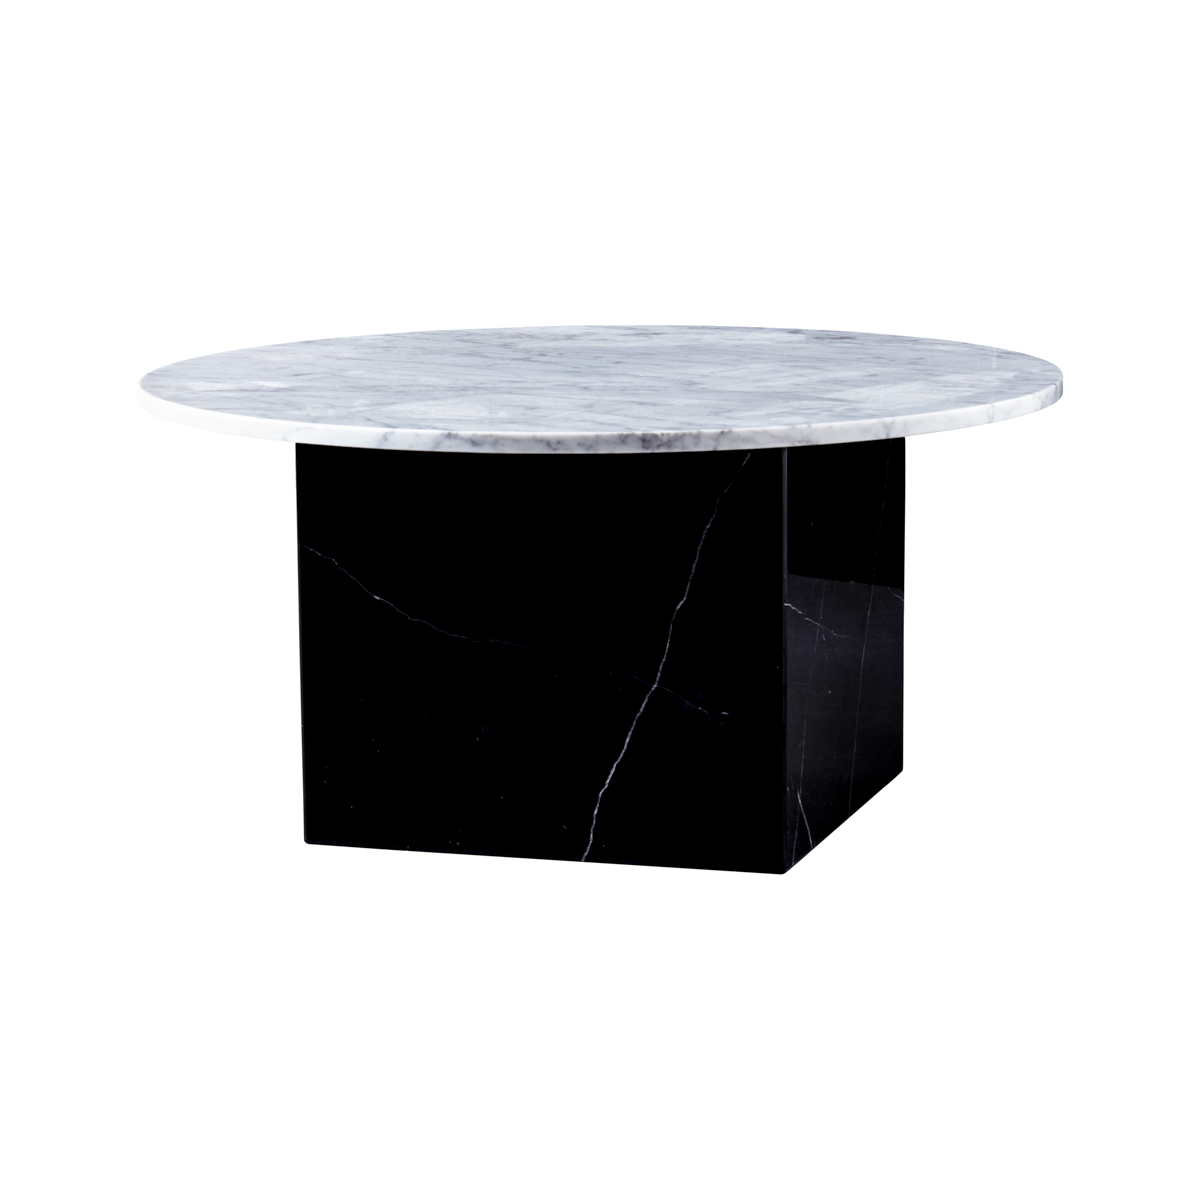 Zenit Coffee Table